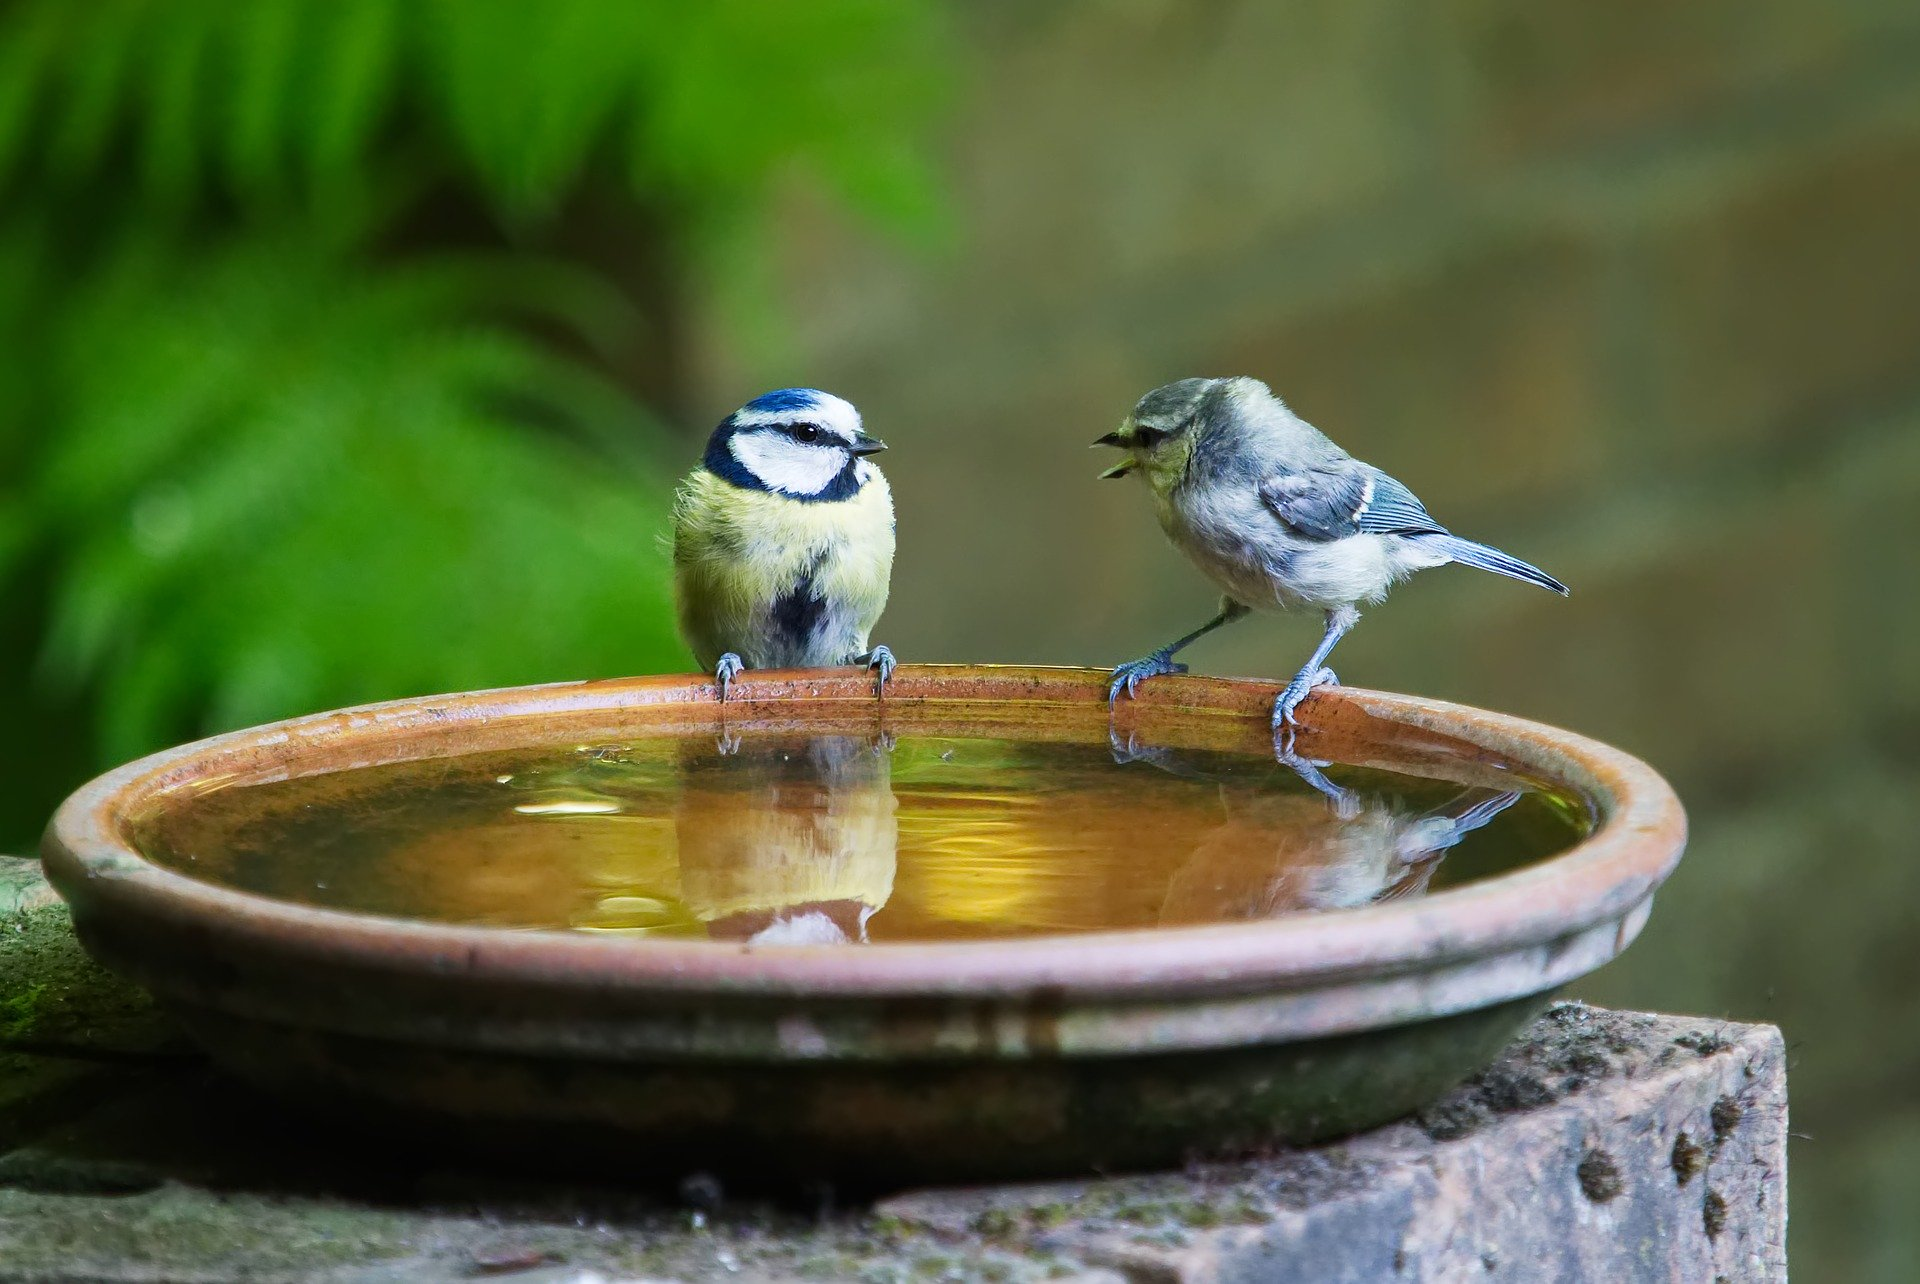 Ceramic dish birdbath nested on an elevated platform.